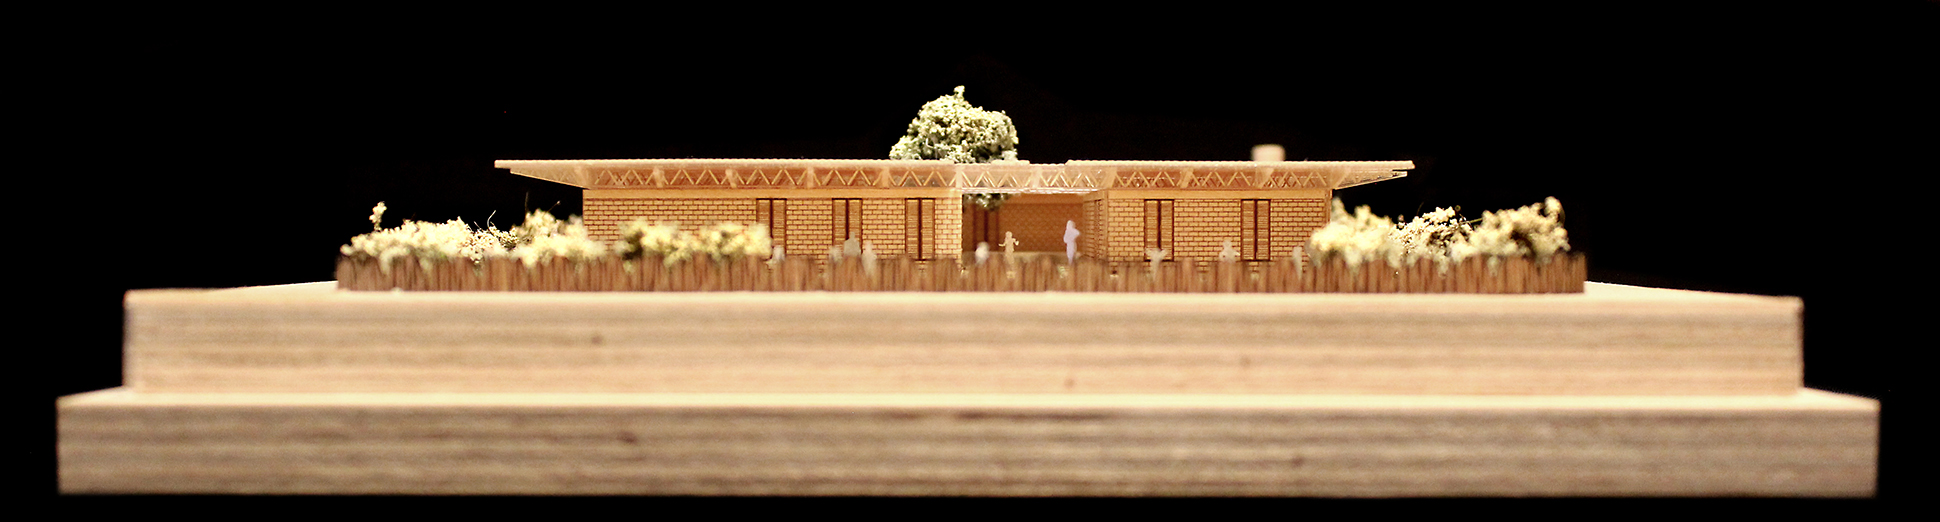 Elevation photograph of a 1 to 200 scale physical wood model of a Modular School Concept for in the Katanga region of the Democratic Republic of Congo by 3bd Architects.jpg